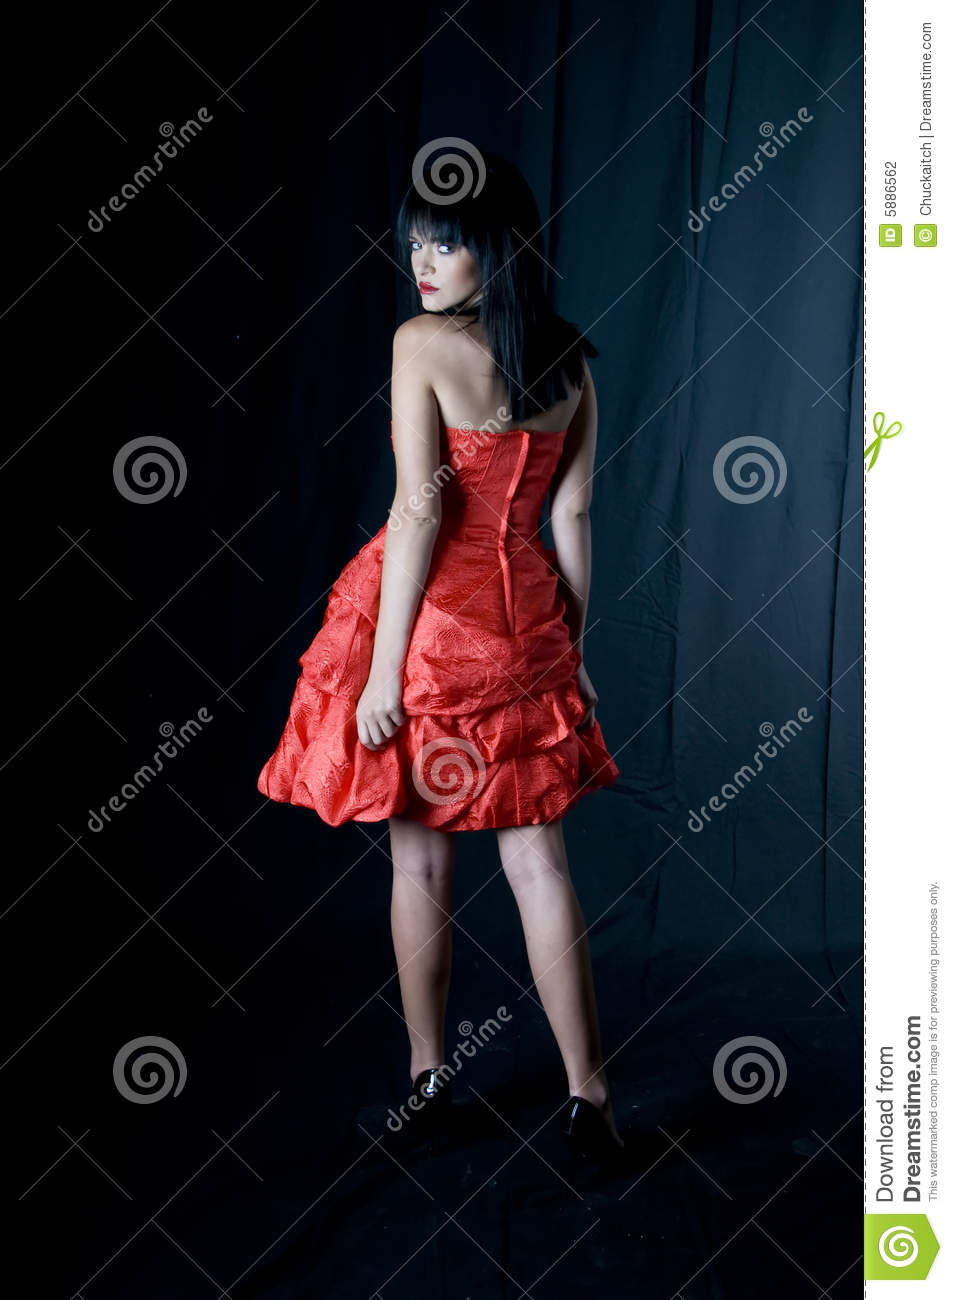 Talya red dress looking back